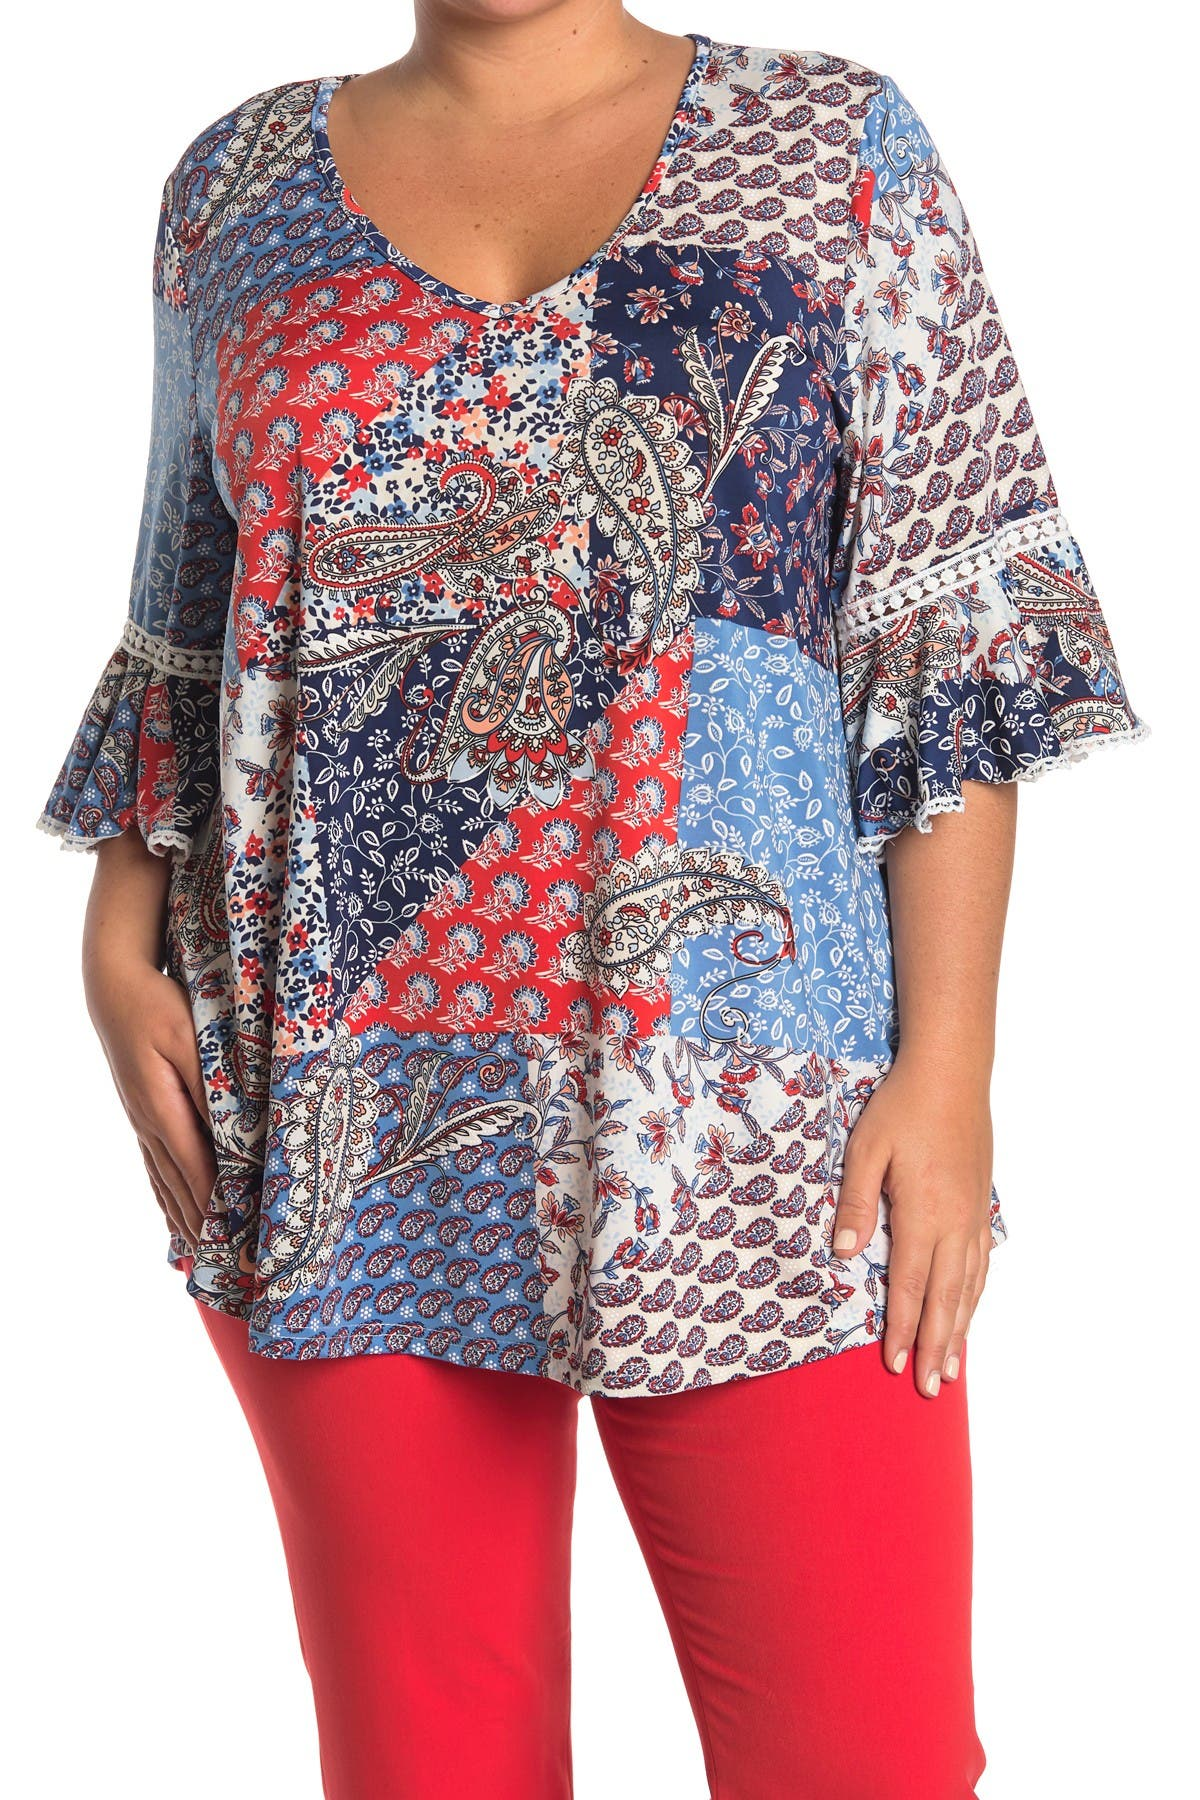 Image of STEM AND VINE Printed Lace Trim Top